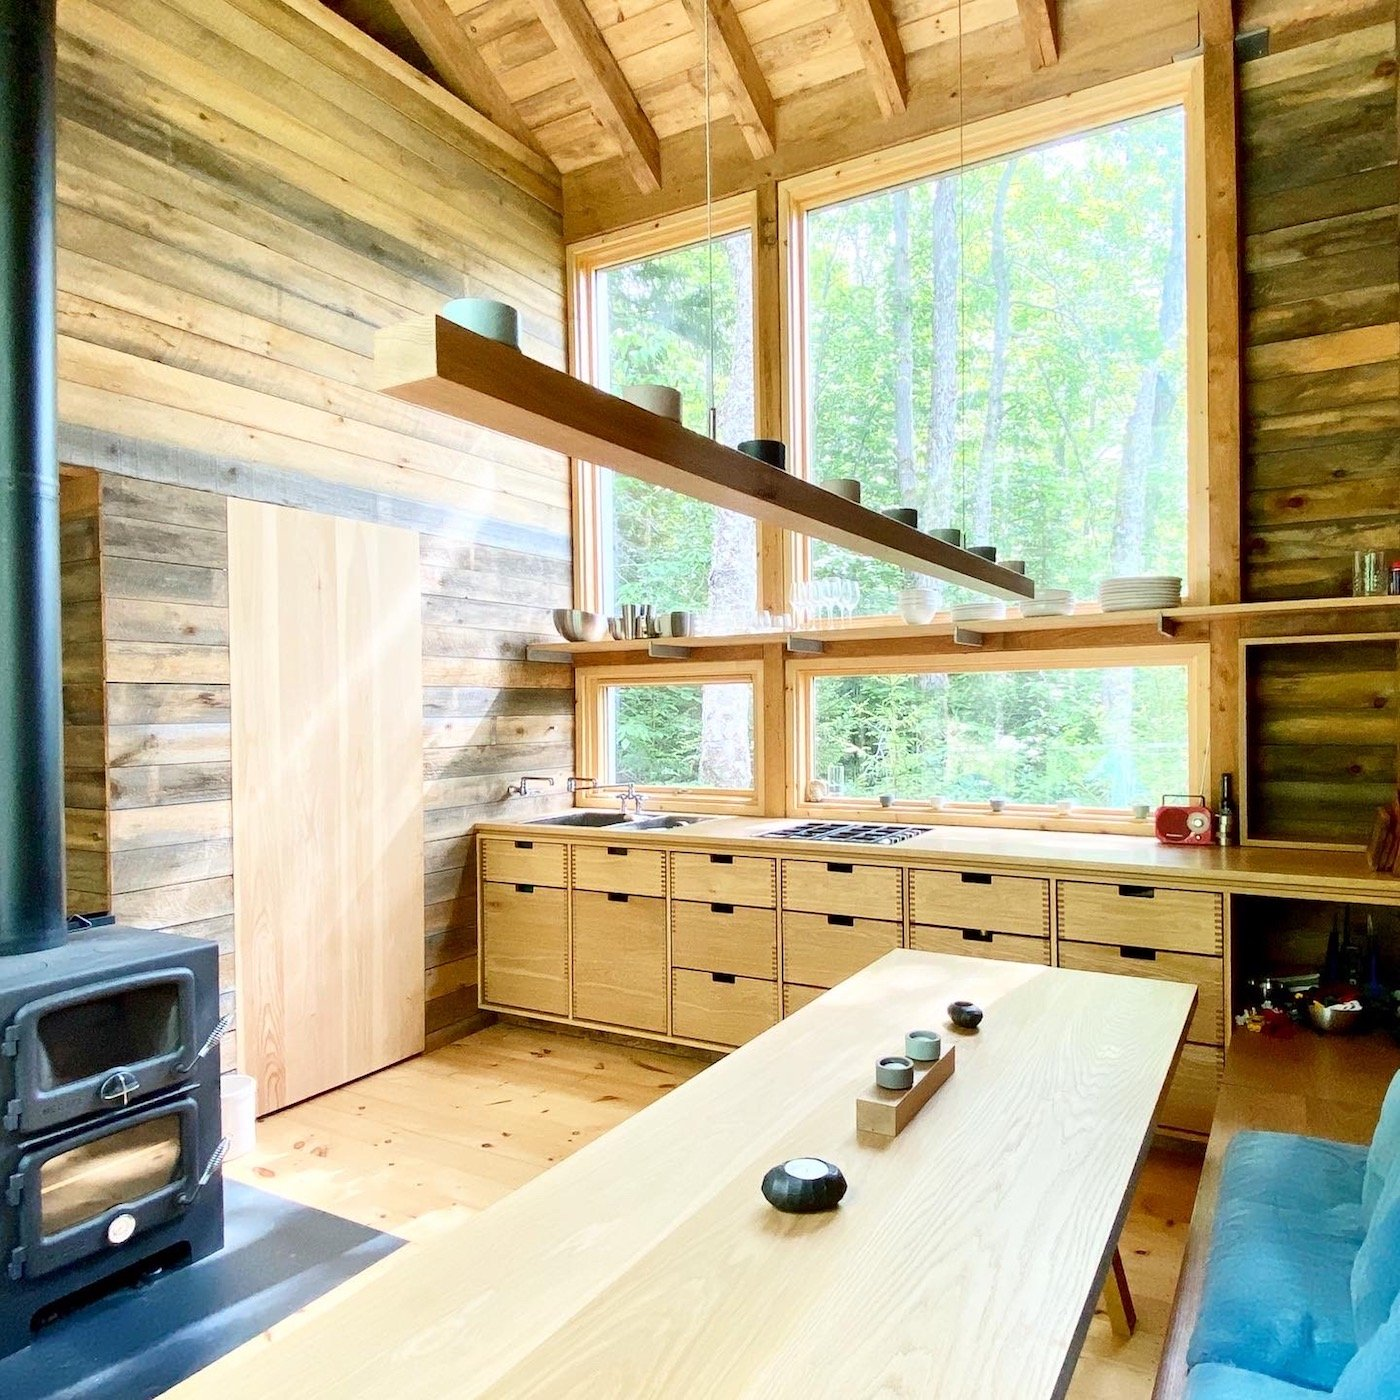 Timber kitchen in timber clad cabin